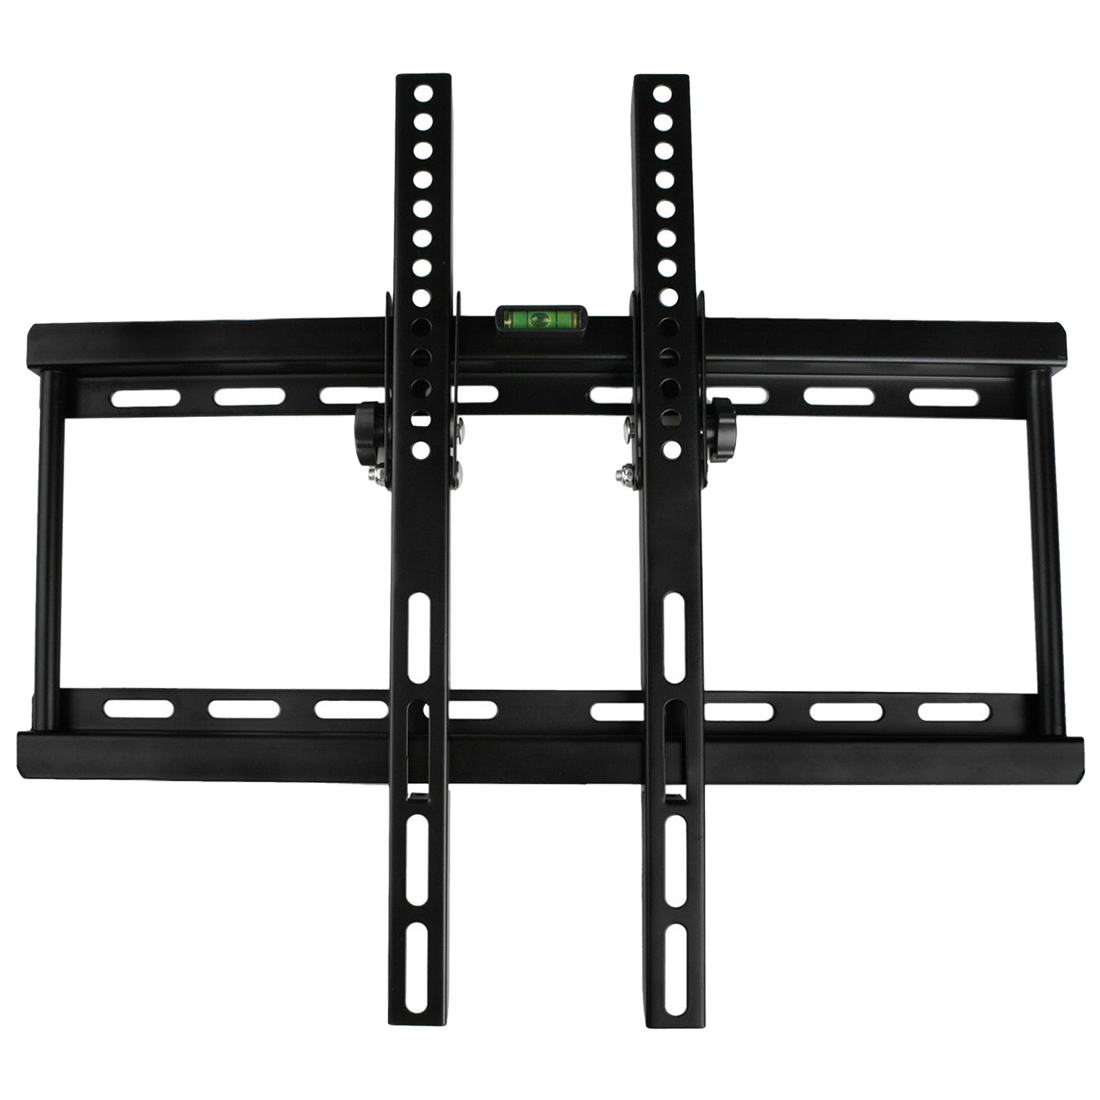 Bathroom Hardware Cooperative Ksol Flat Slim Tv Wall Mount Bracket 23 28 30 32 40 42 48 50 55 Inch Led Lcd Plasma Beneficial To Essential Medulla Home Improvement